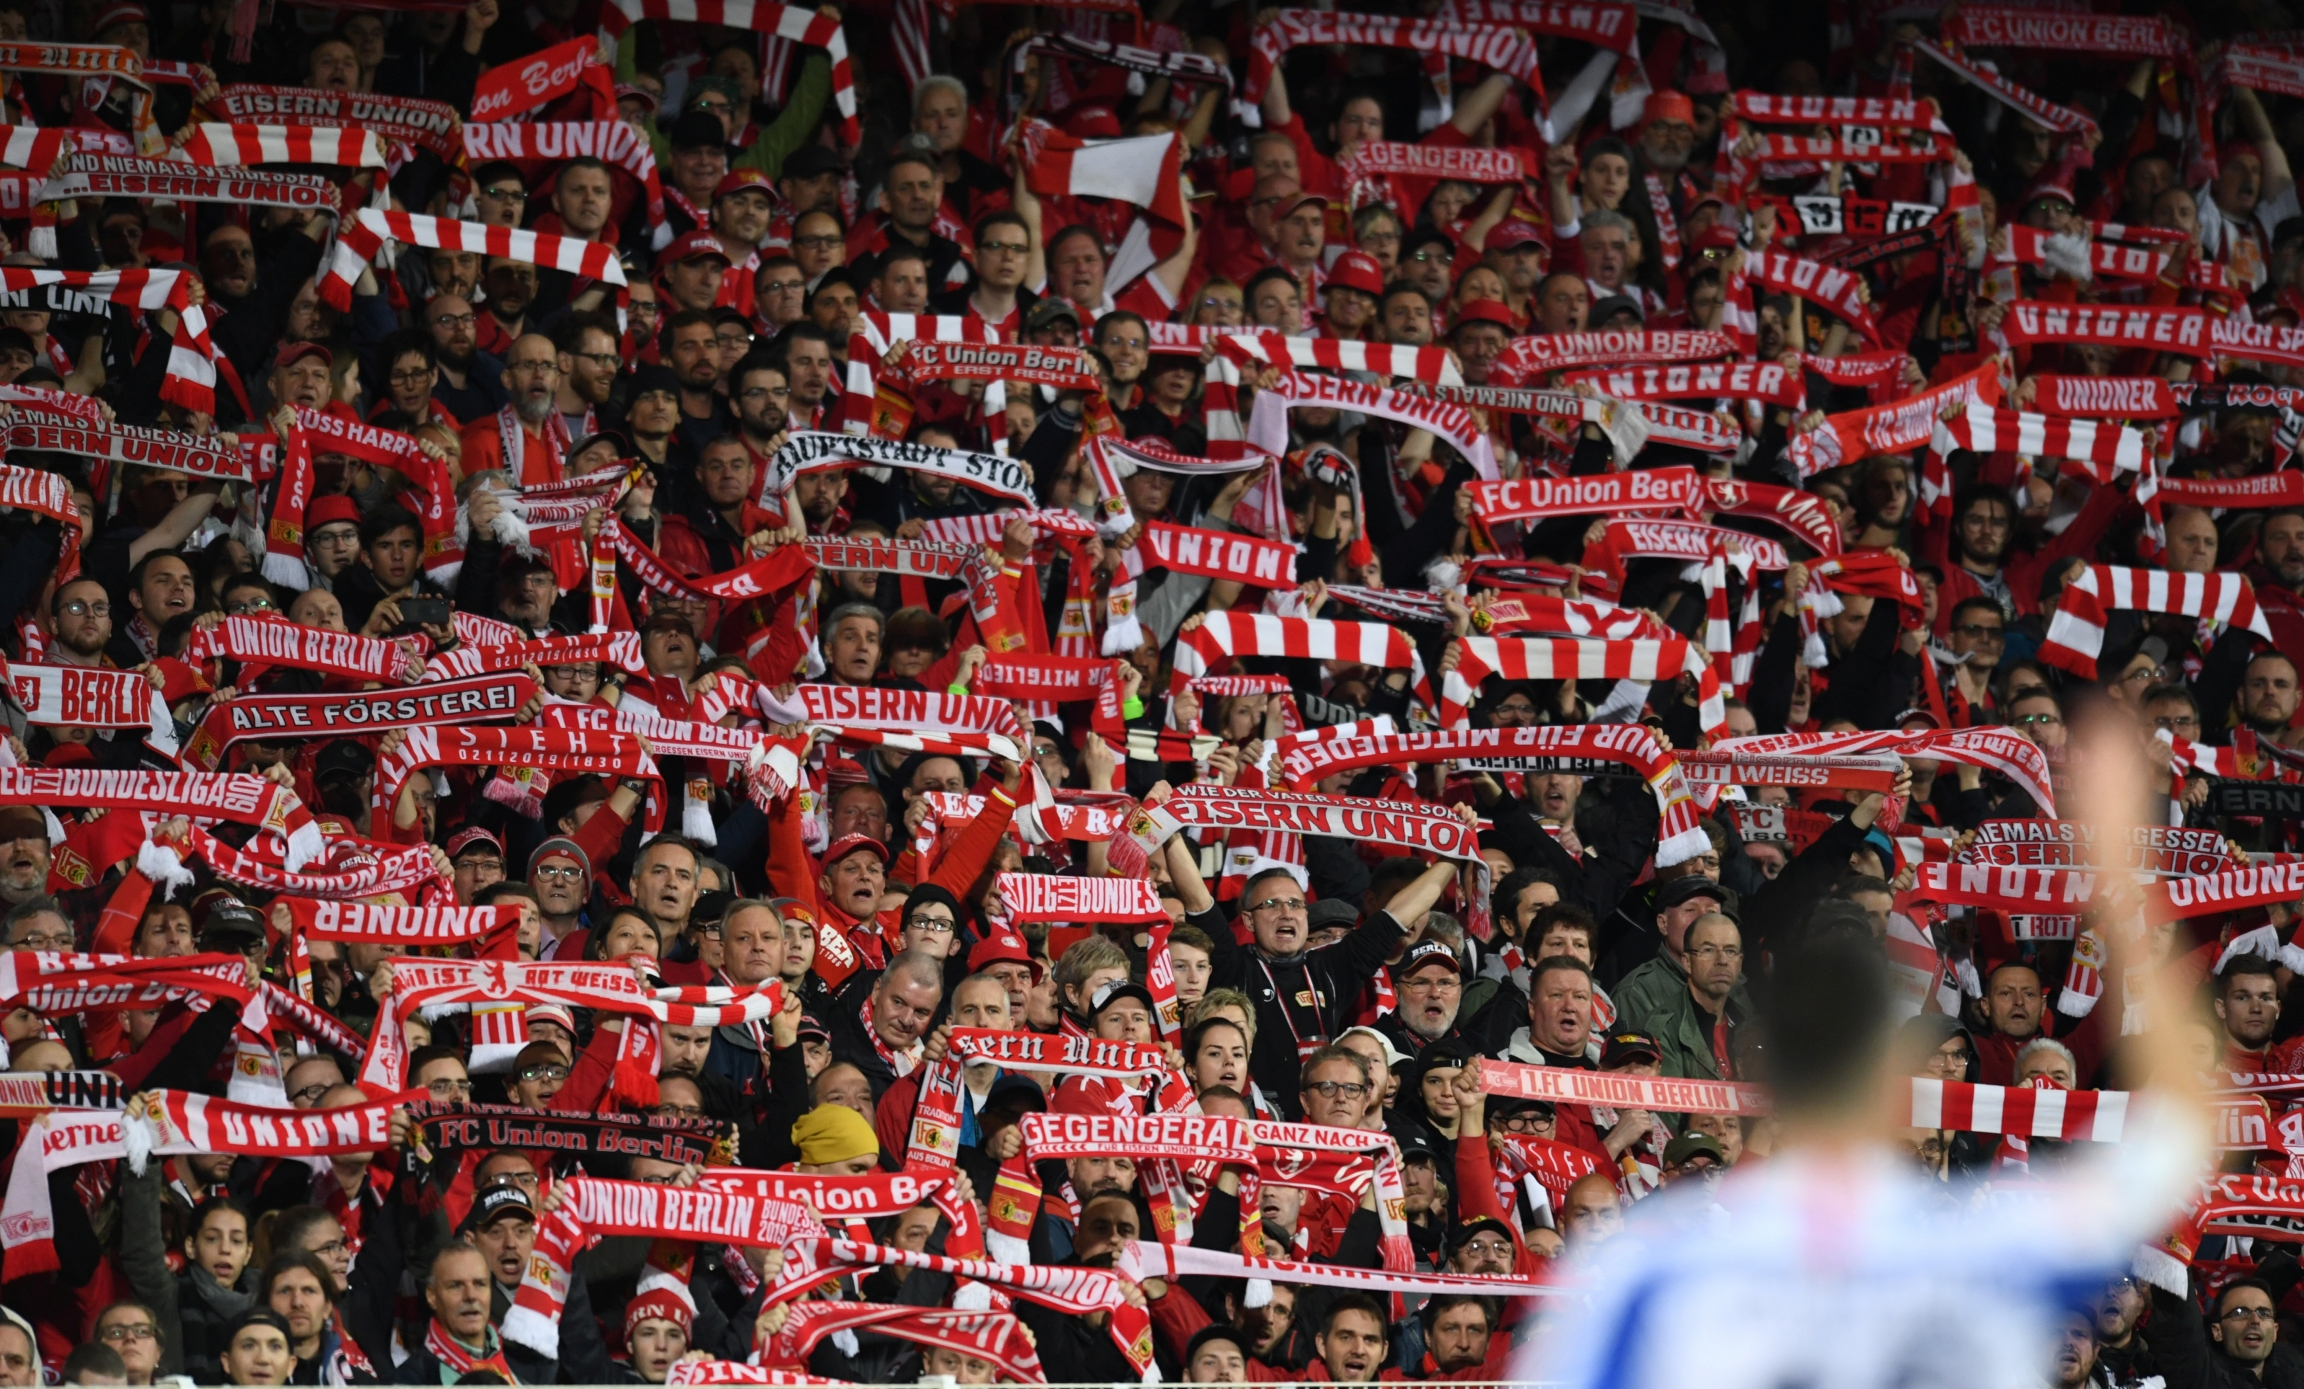 1. FCUnionBerlin fans hold up their scarves during the match on Nov. 2, 2019, Berlin, Germany.